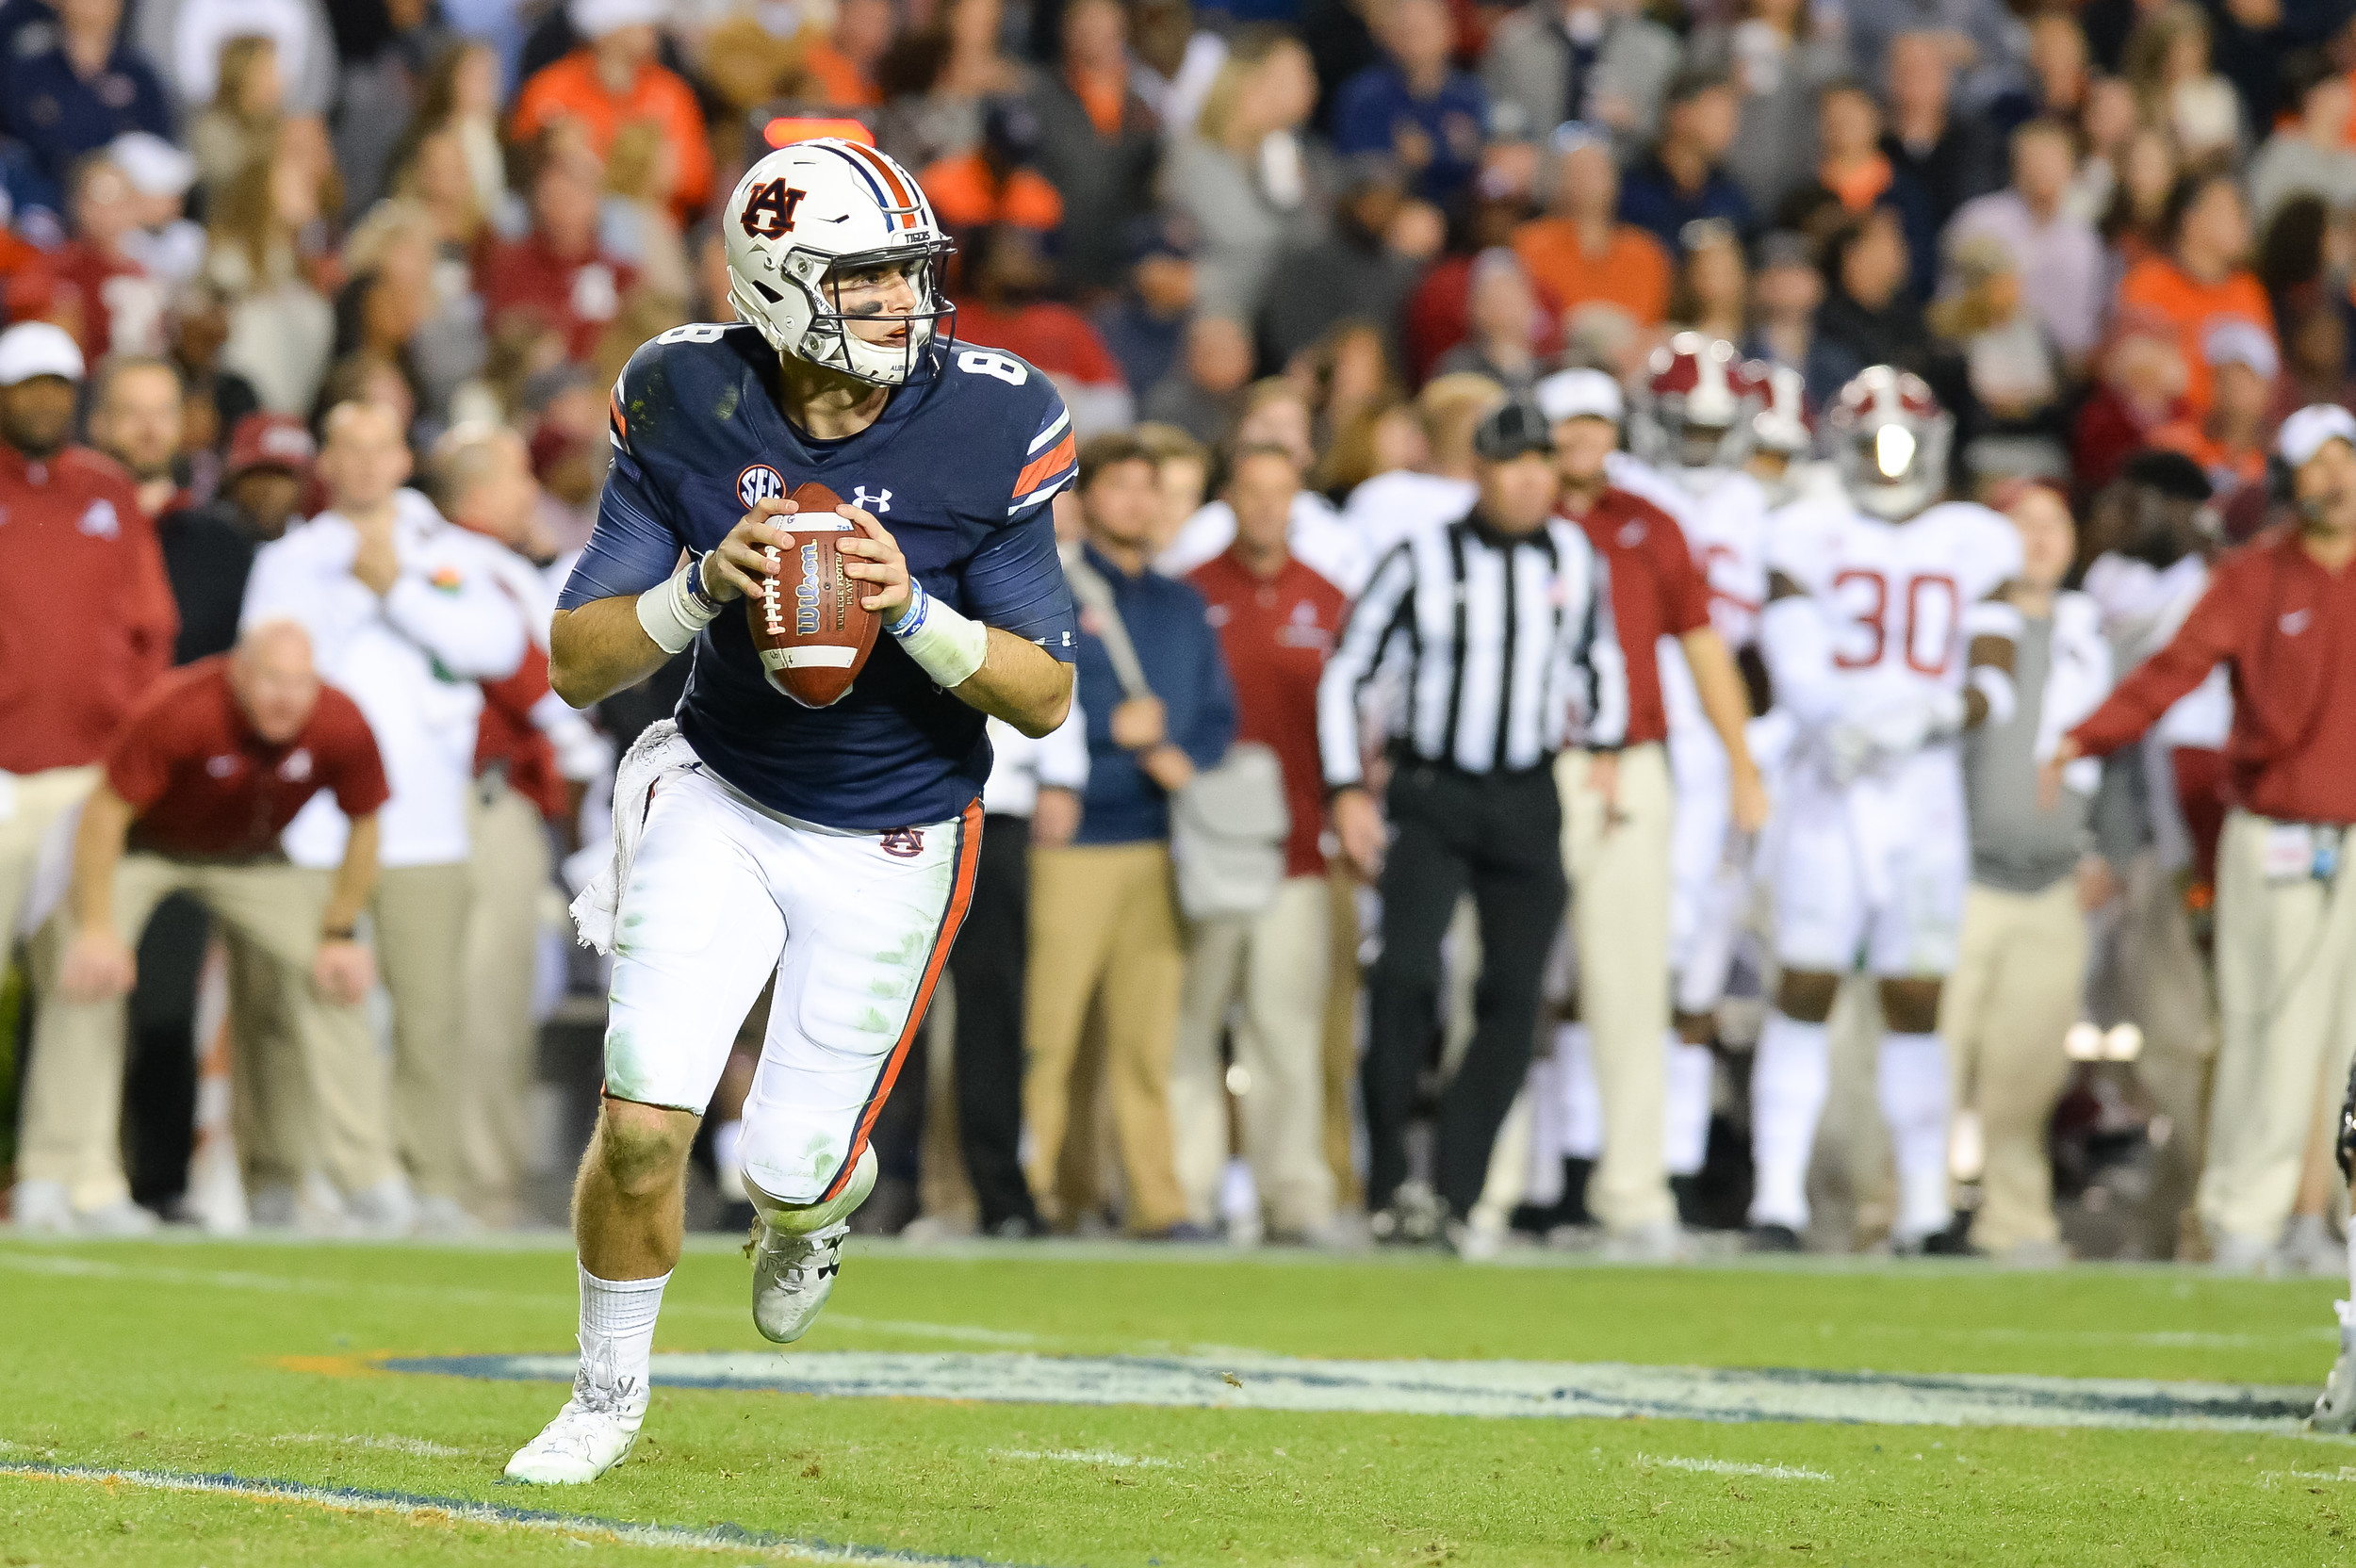 Auburn Tigers quarterback Jarrett Stidham (8) rolls out to pass during the second half of Saturday's game, at Jordan-Hare Stadium.